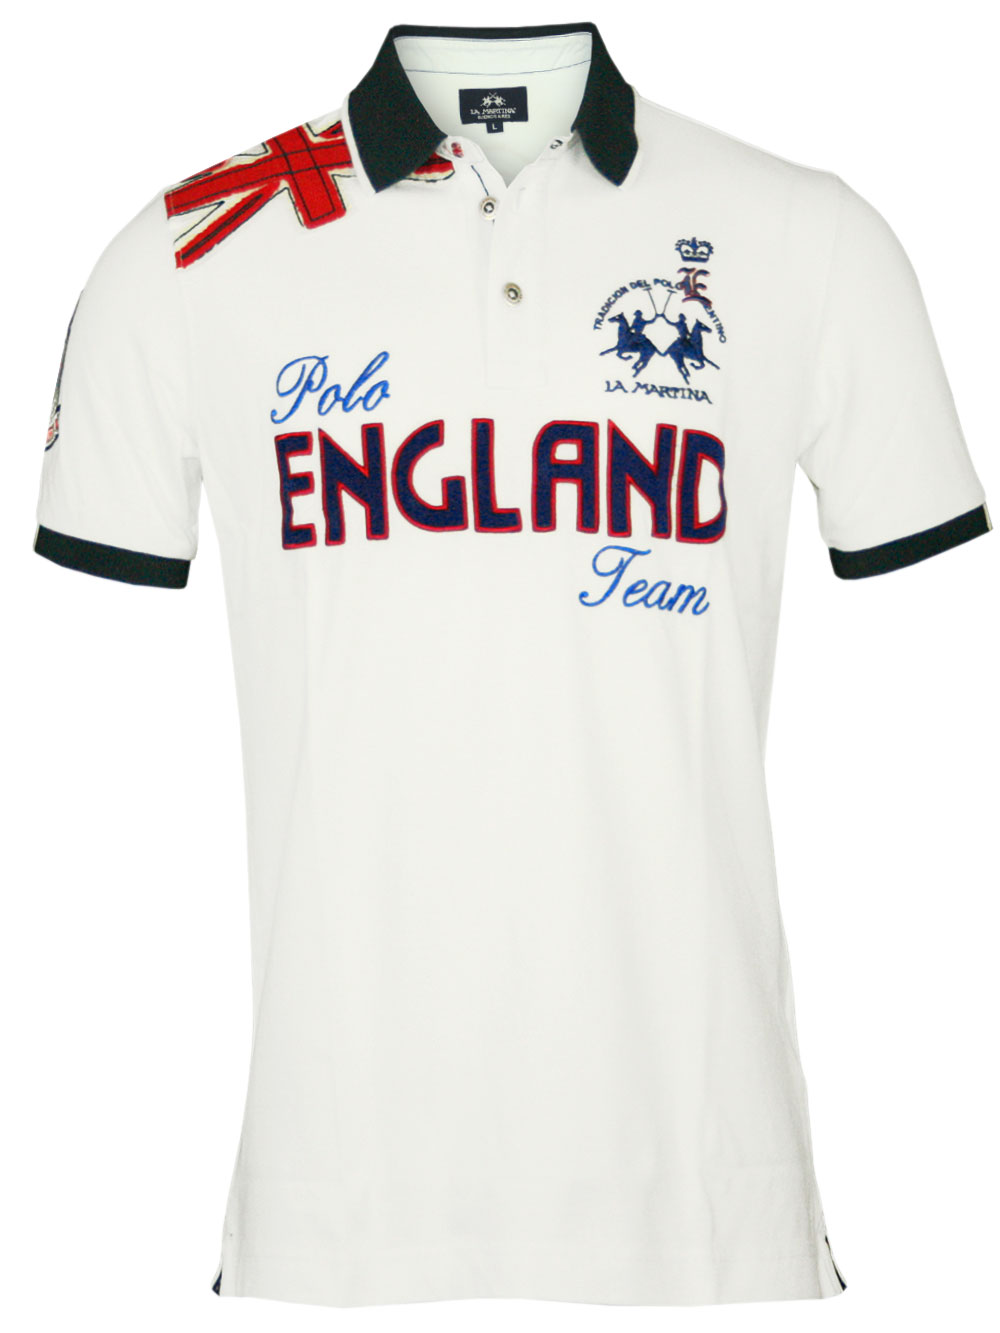 edles la martina herren polo shirt england in weiss m 3xl neu ovp ebay. Black Bedroom Furniture Sets. Home Design Ideas